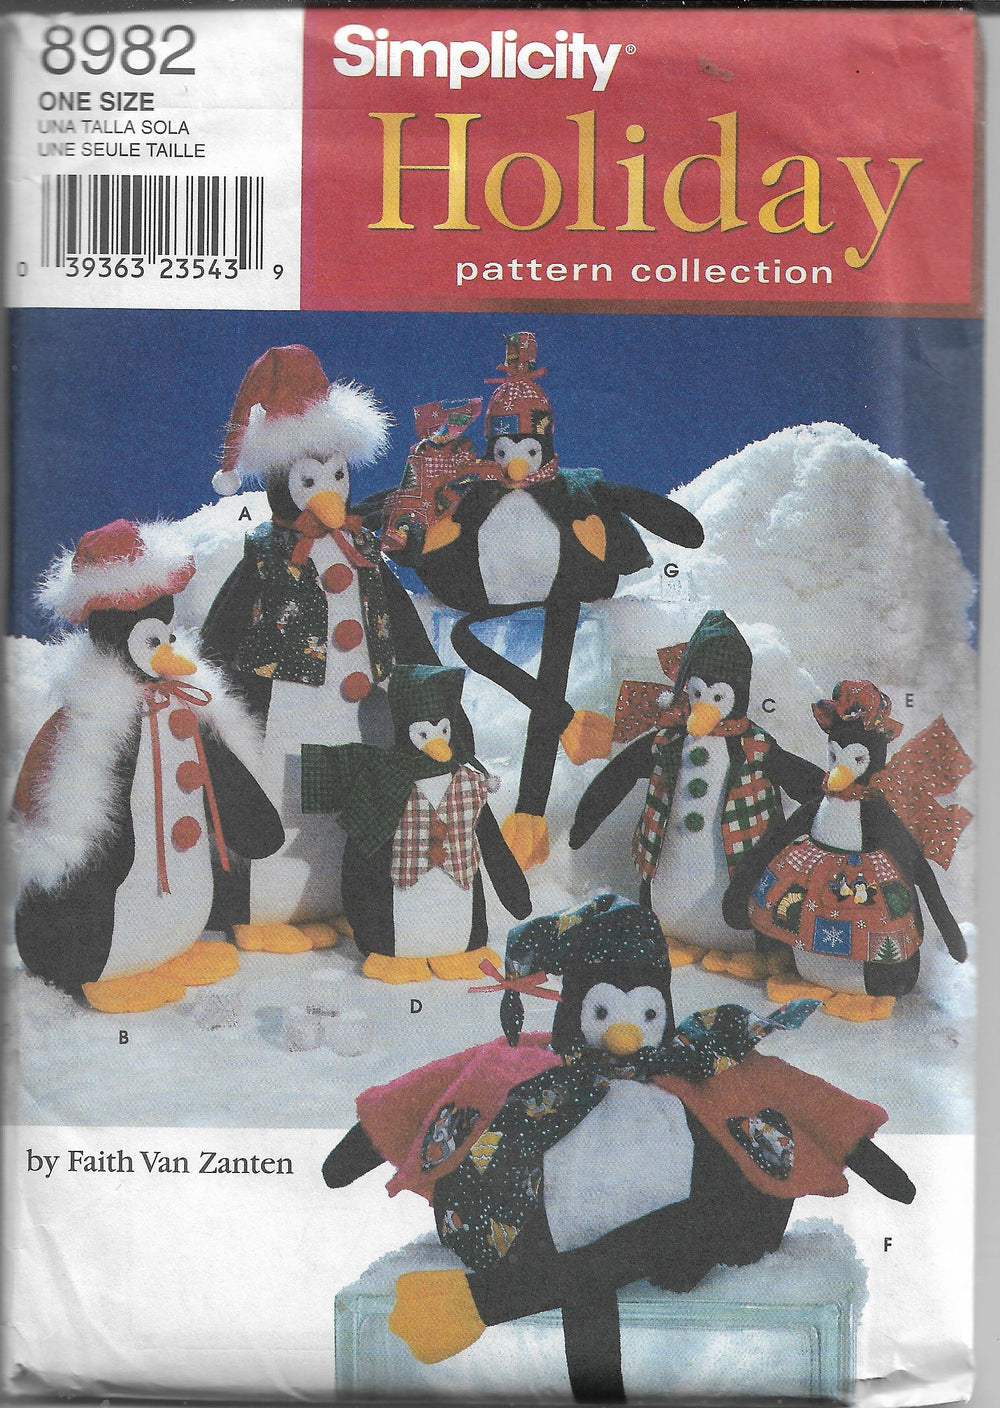 Simplicity 8982 Craft Sewing Pattern Christmas Stuffed Penguins - VintageStitching - Vintage Sewing Patterns